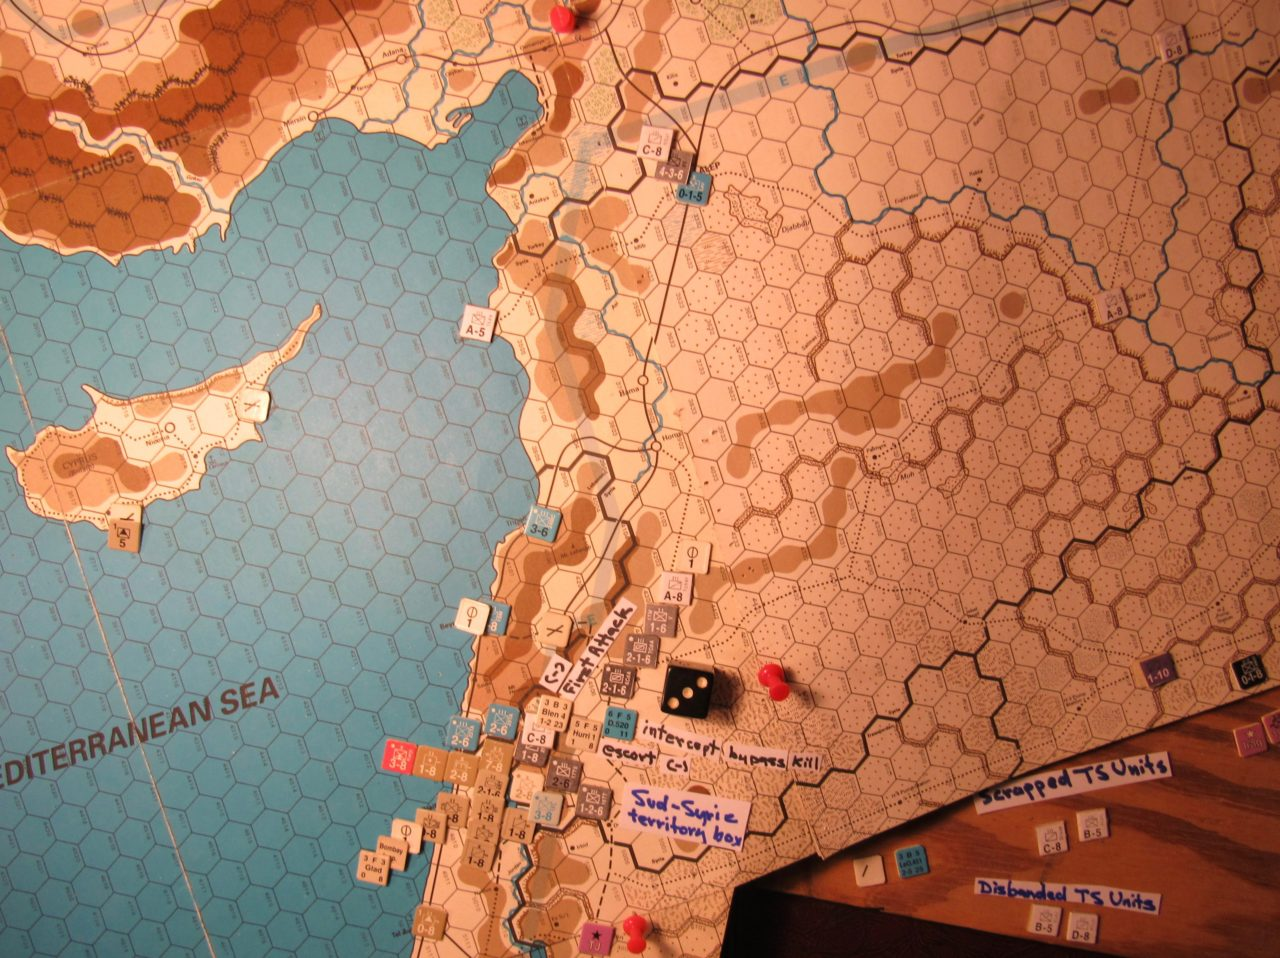 Jun I 41 Allied Combat Phase action: First Attack in the French Levant